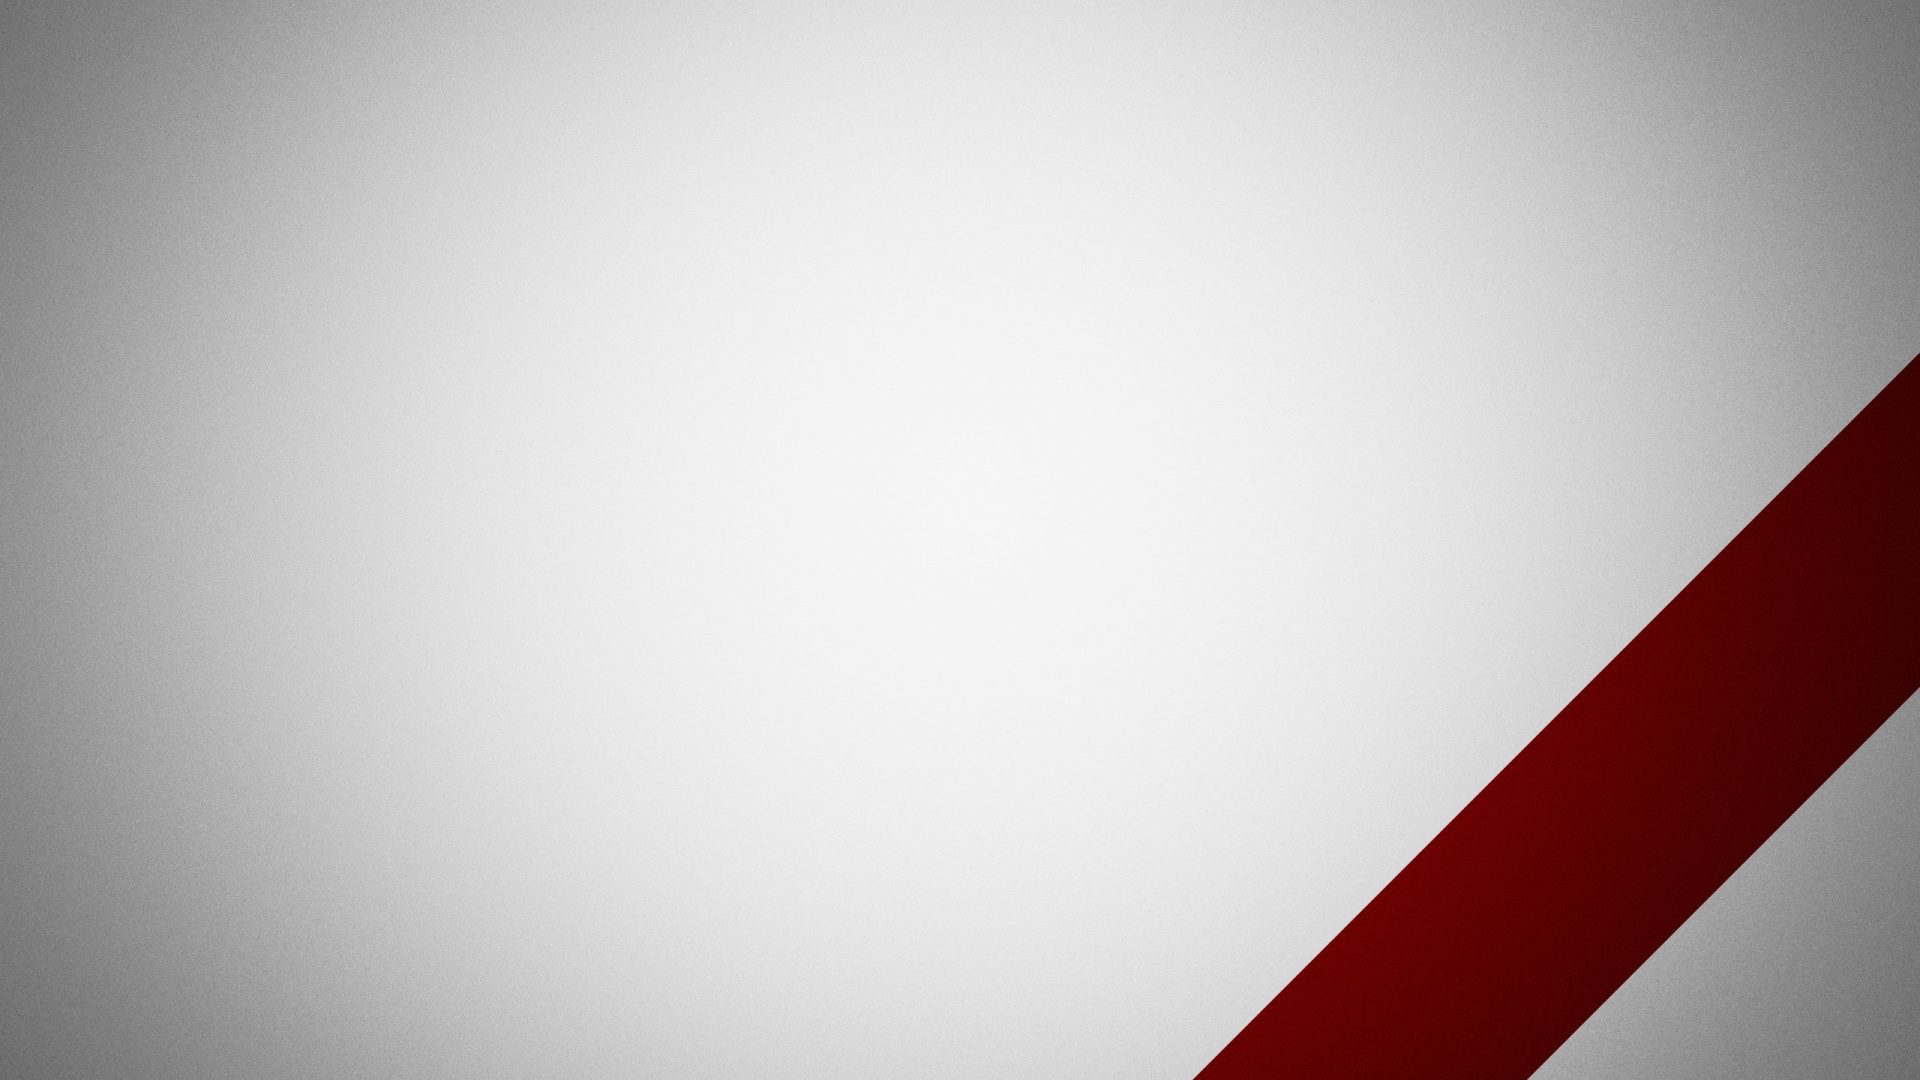 Free Download 1920x1080 Red And White Desktop Pc And Mac